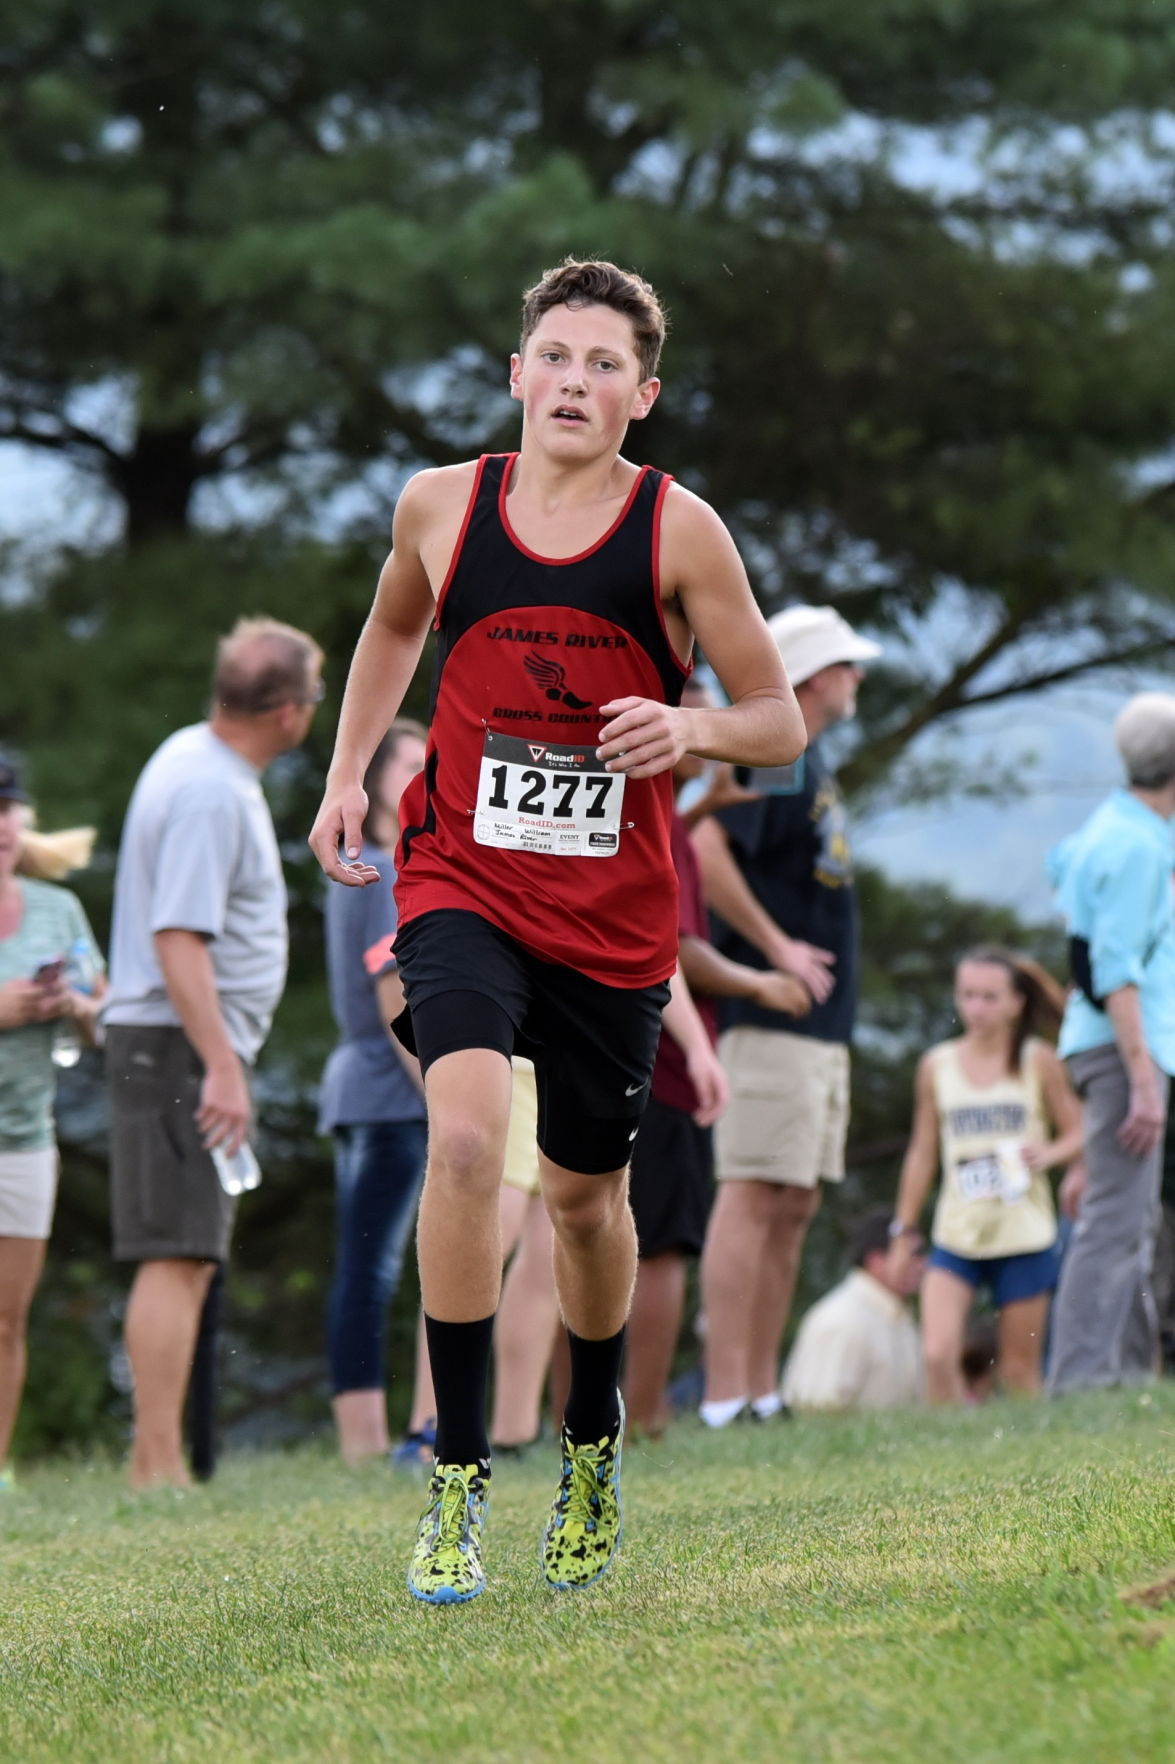 WILL MILLER - Class of 2018SCHOOL RECORD 5000m XC - 15:34VIRGINIA 2A STATE CHAMPION47 Second PRFAST TRACK TRAINING